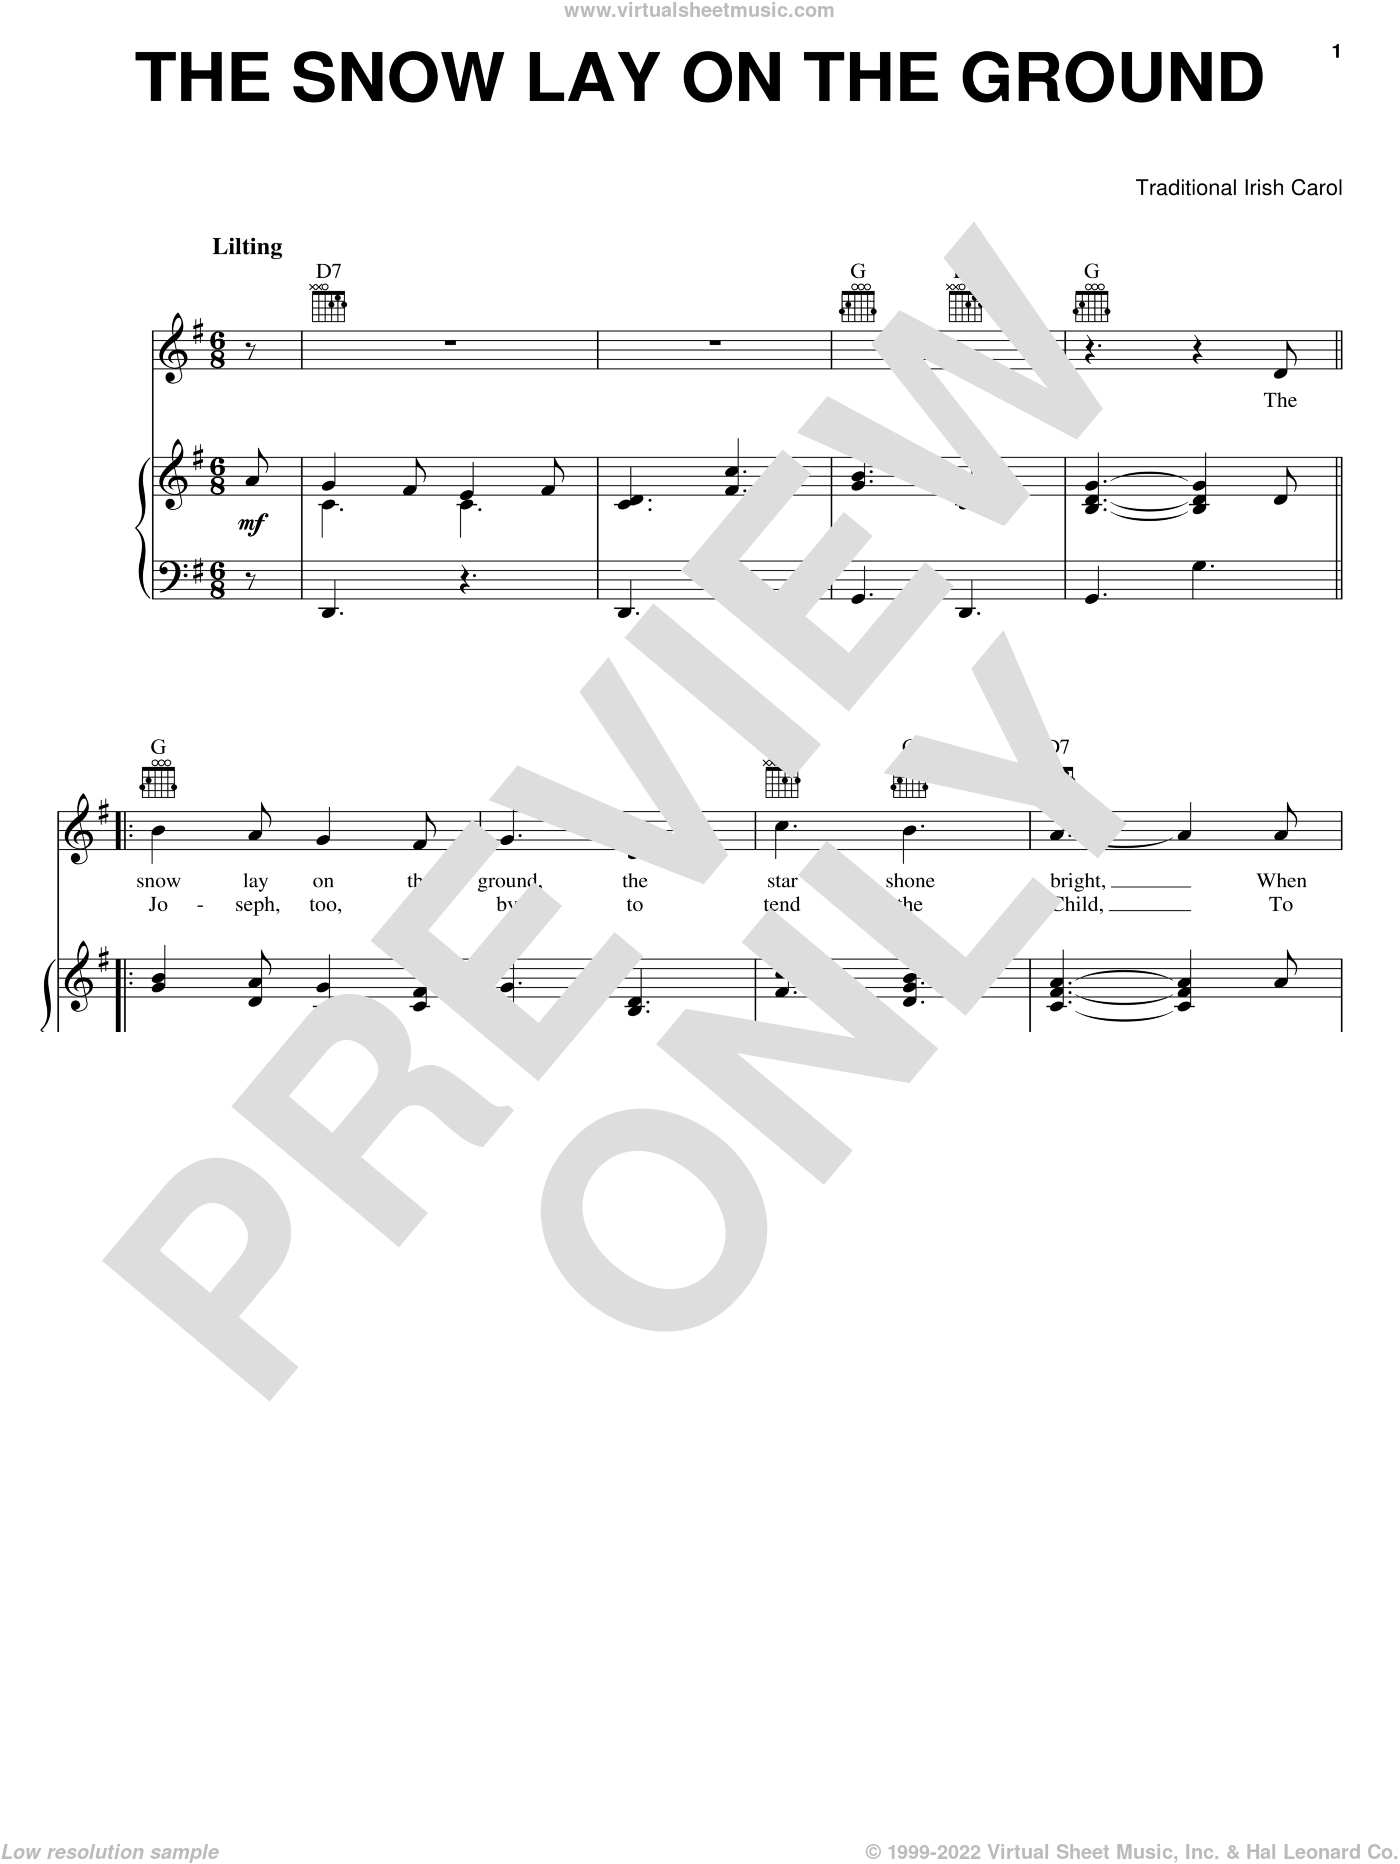 The Snow Lay On The Ground sheet music for voice, piano or guitar, intermediate skill level